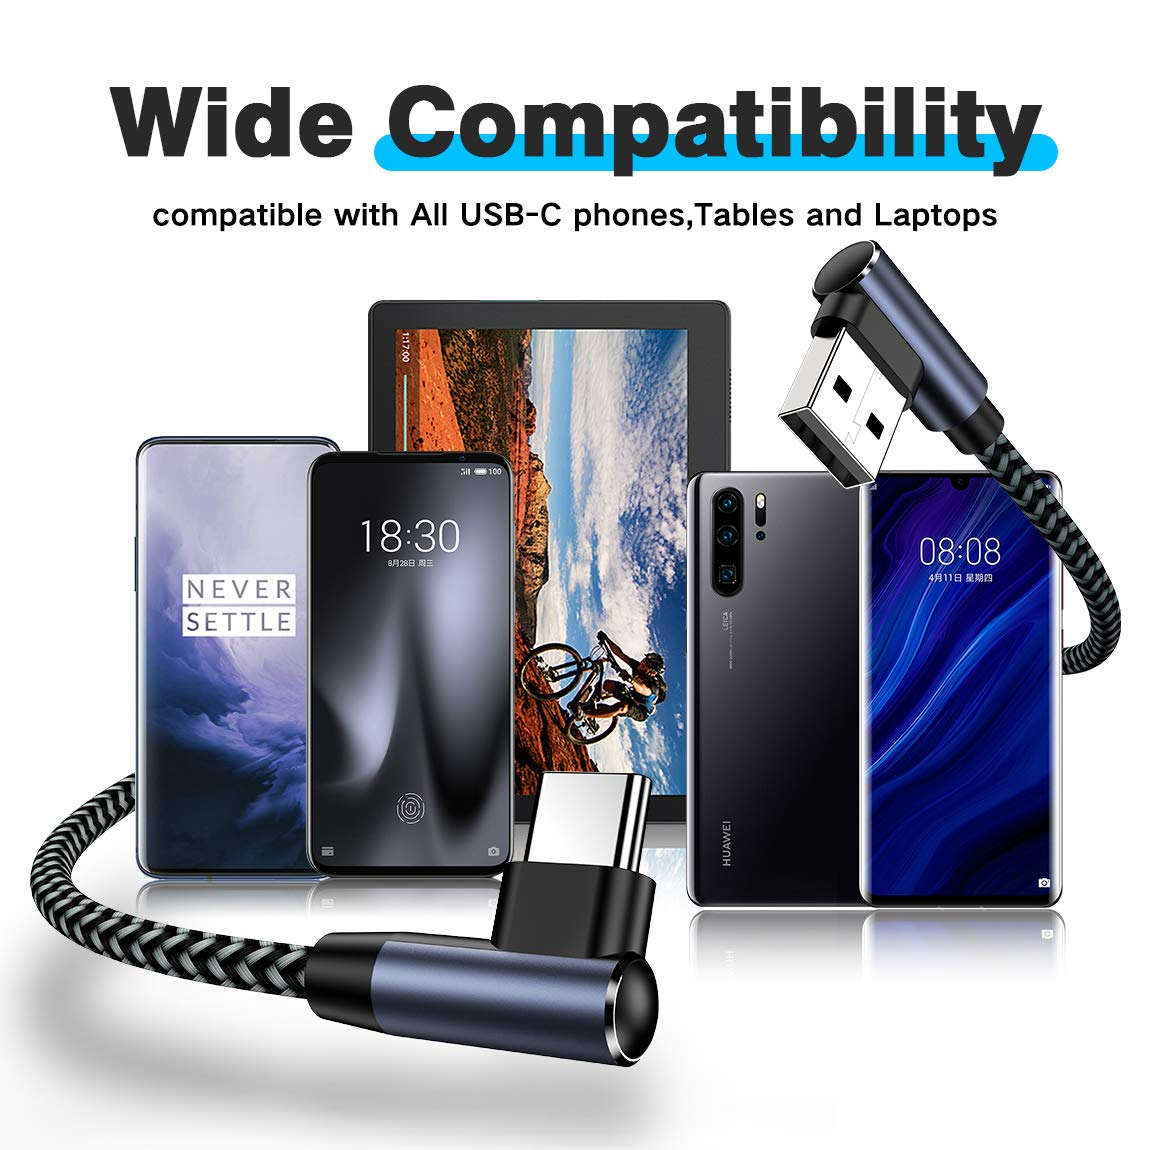 Short USB C Cable 1ft 90 Degree Right Angle USB A to Type C Fast Charger Braided Cord Compatible for Samsung Galaxy S10 S9 Plus S8 Note 9 8 LG G8//7 V40 V20 V30 G6 G5 2018 iPad Pro AOJI 4pack